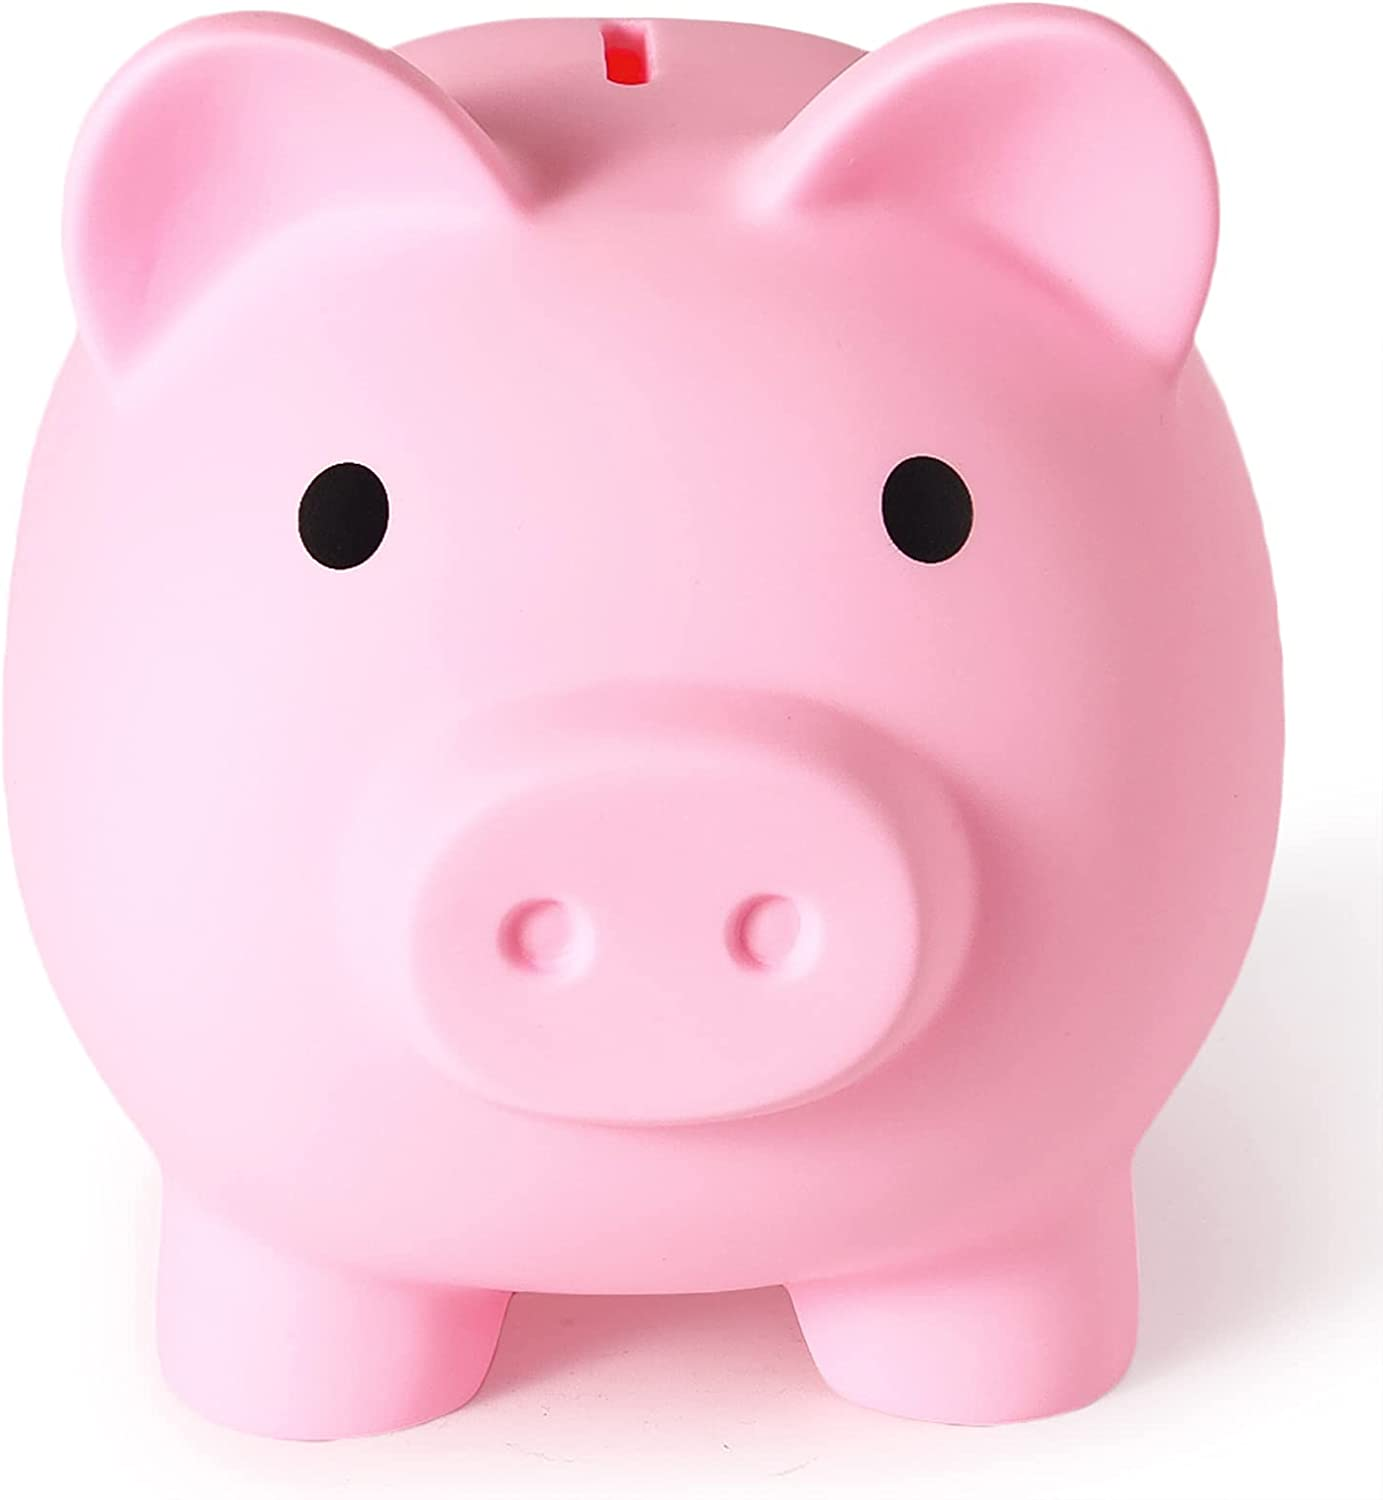 Large Piggy Bank, Unbreakable Plastic Money Bank, Coin Bank for Girls and Boys, Large Size Piggy Banks, Practical Gifts for Birthday, Christmas, Baby Shower (Pink)